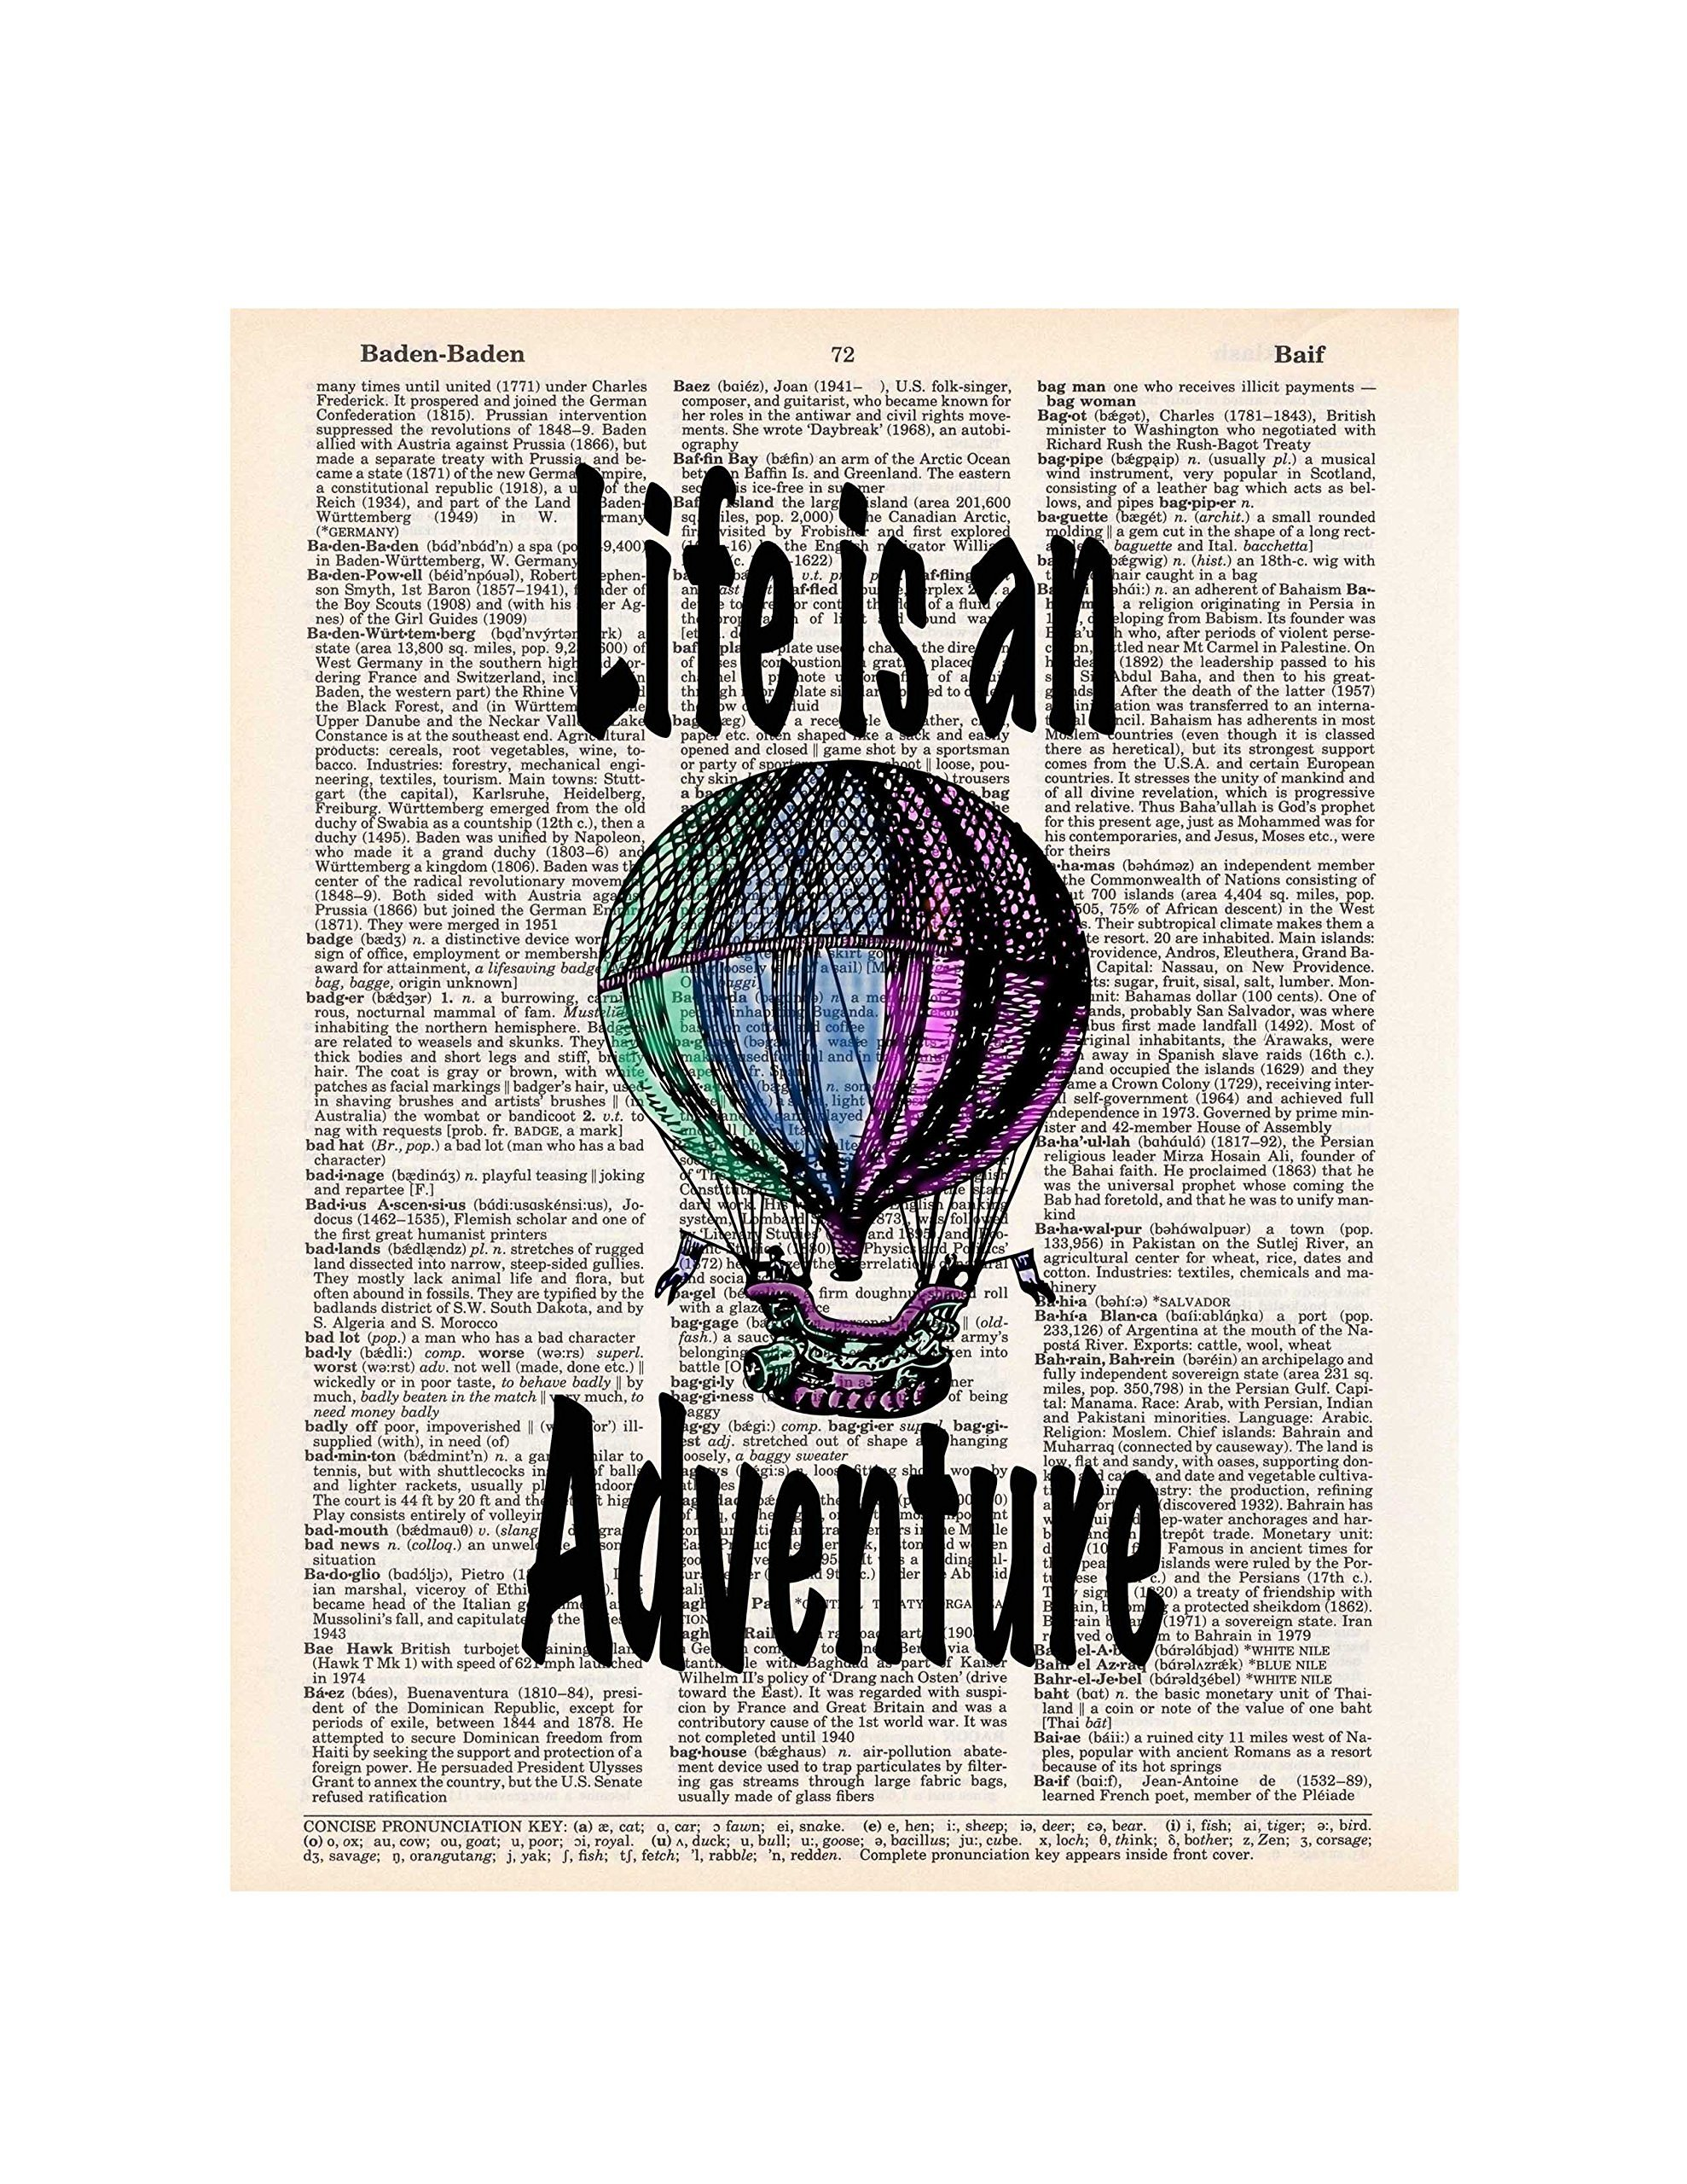 Hot Air Balloon, Life is an Adventure, Dictionary Page Art Print, 8x11 inches, Unframed 3